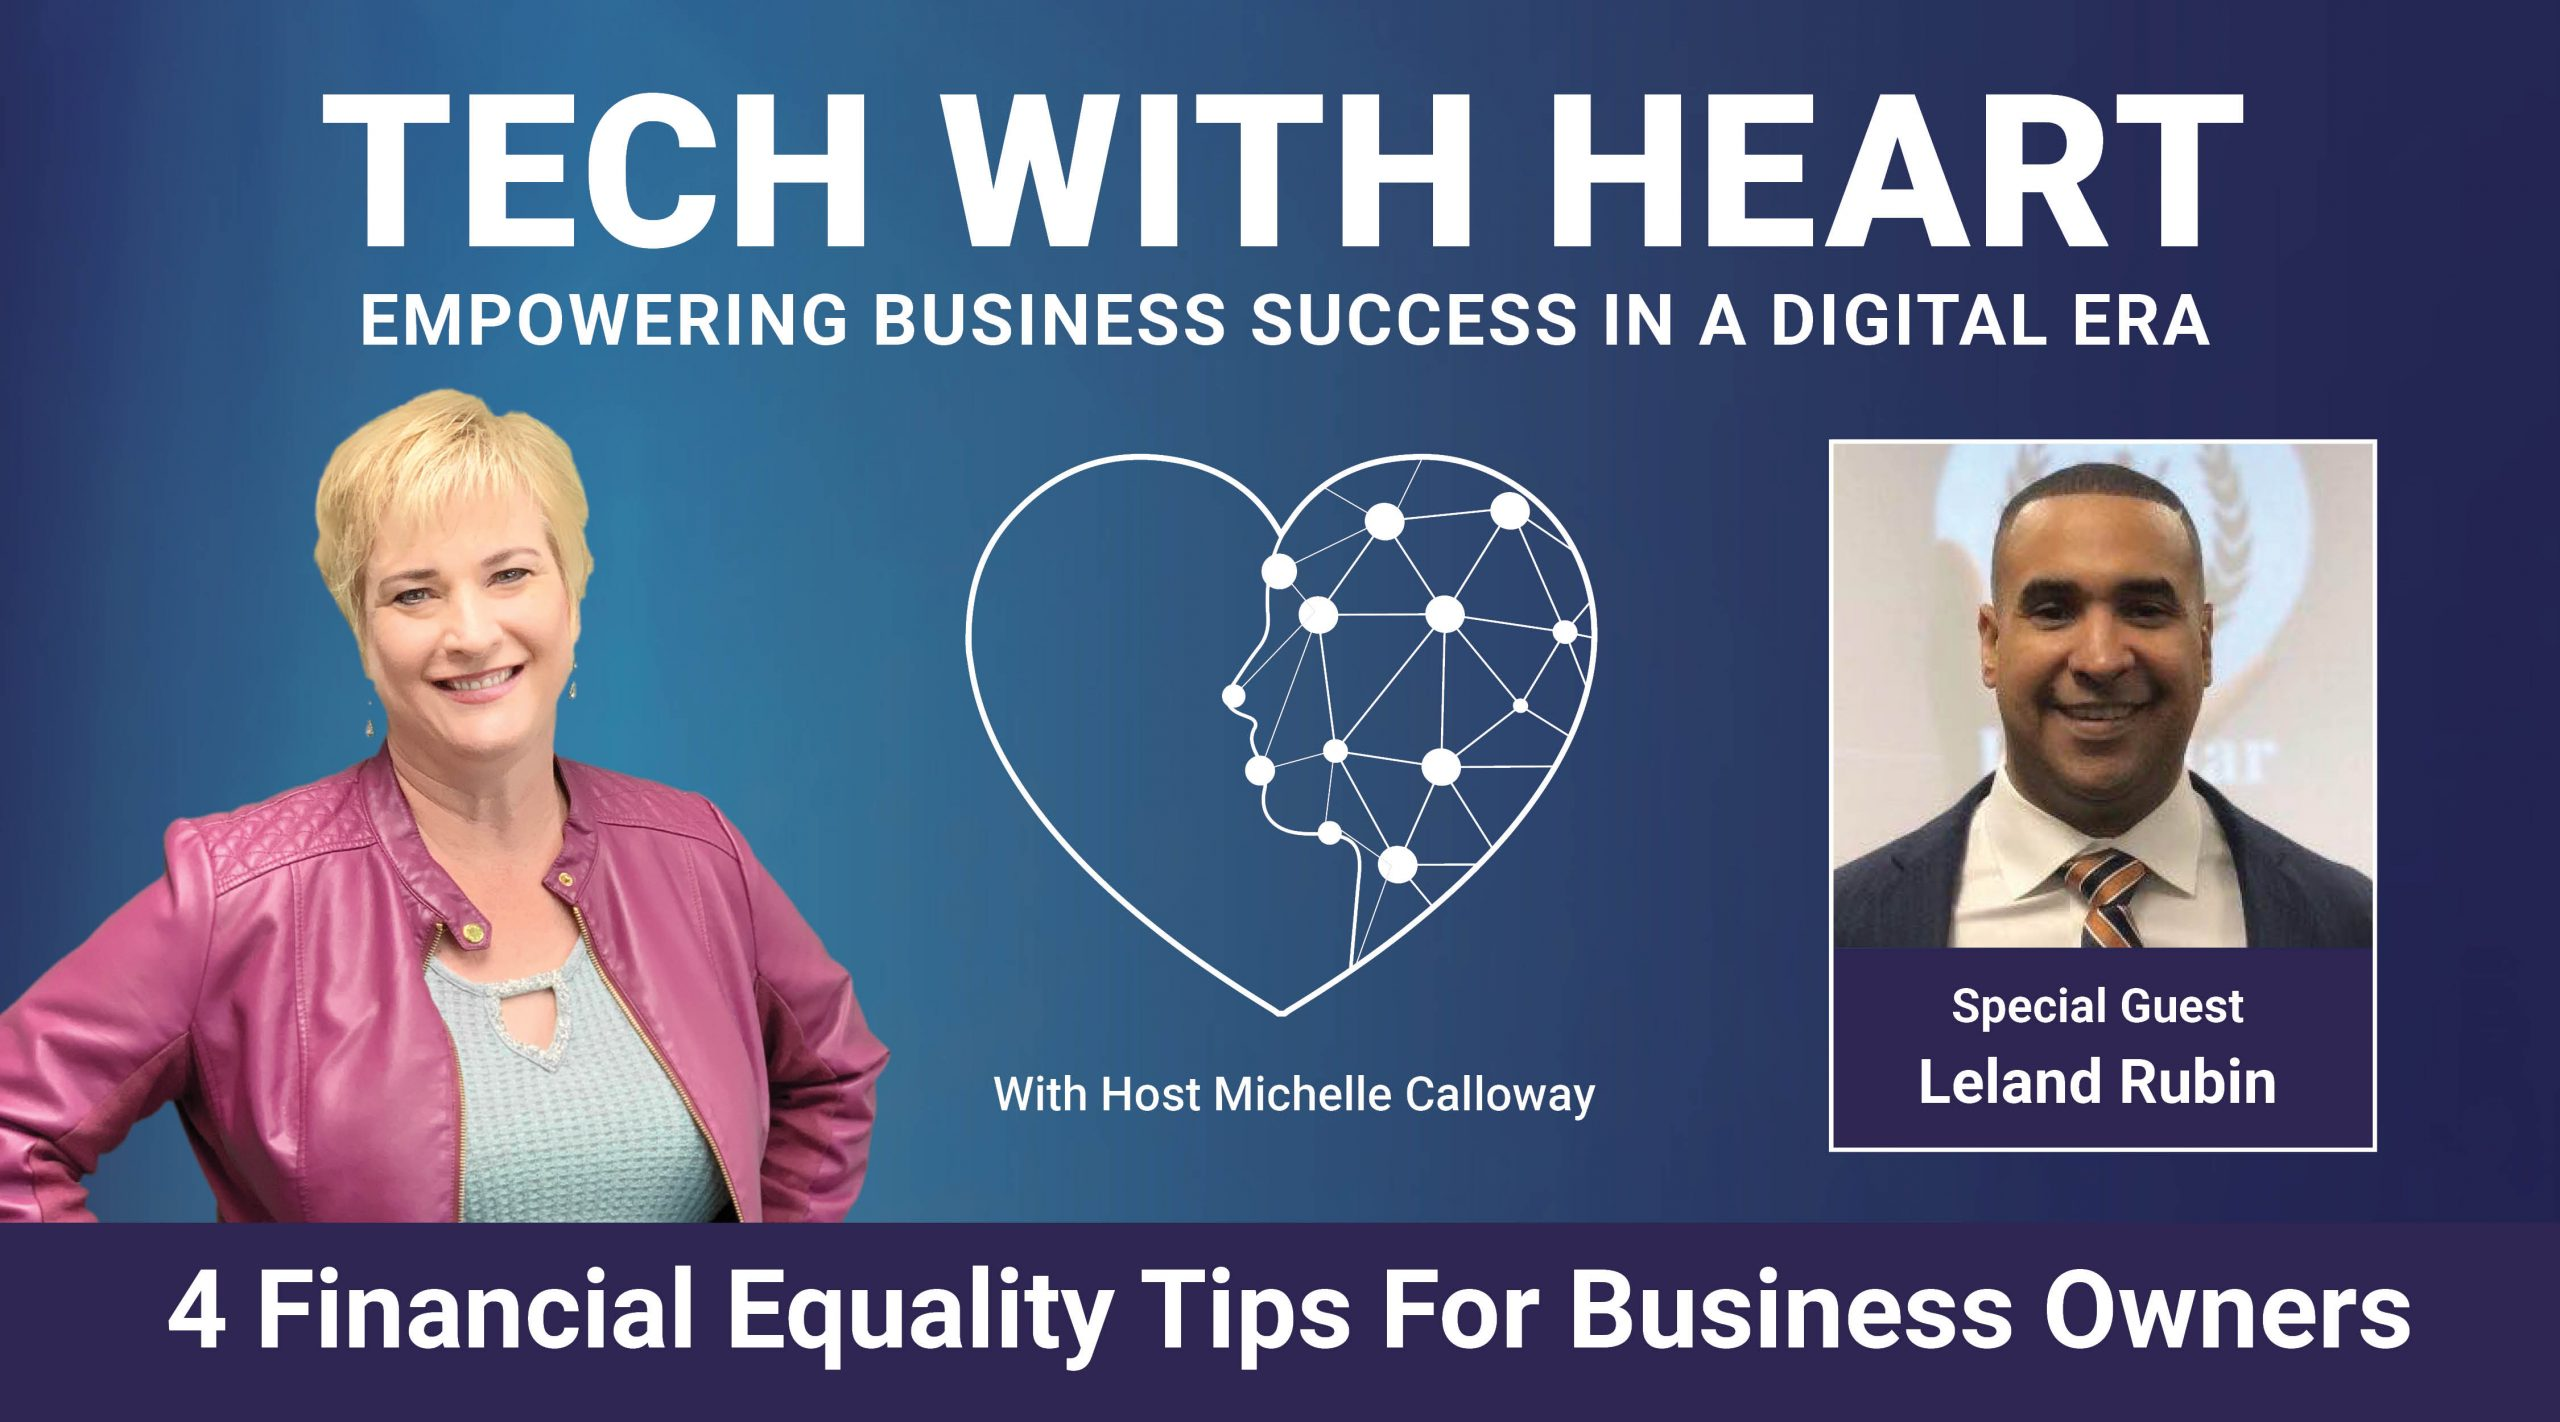 4 Financial Equality Tips for Business Owners – A Tech With Heart Interview with Leland Rubin